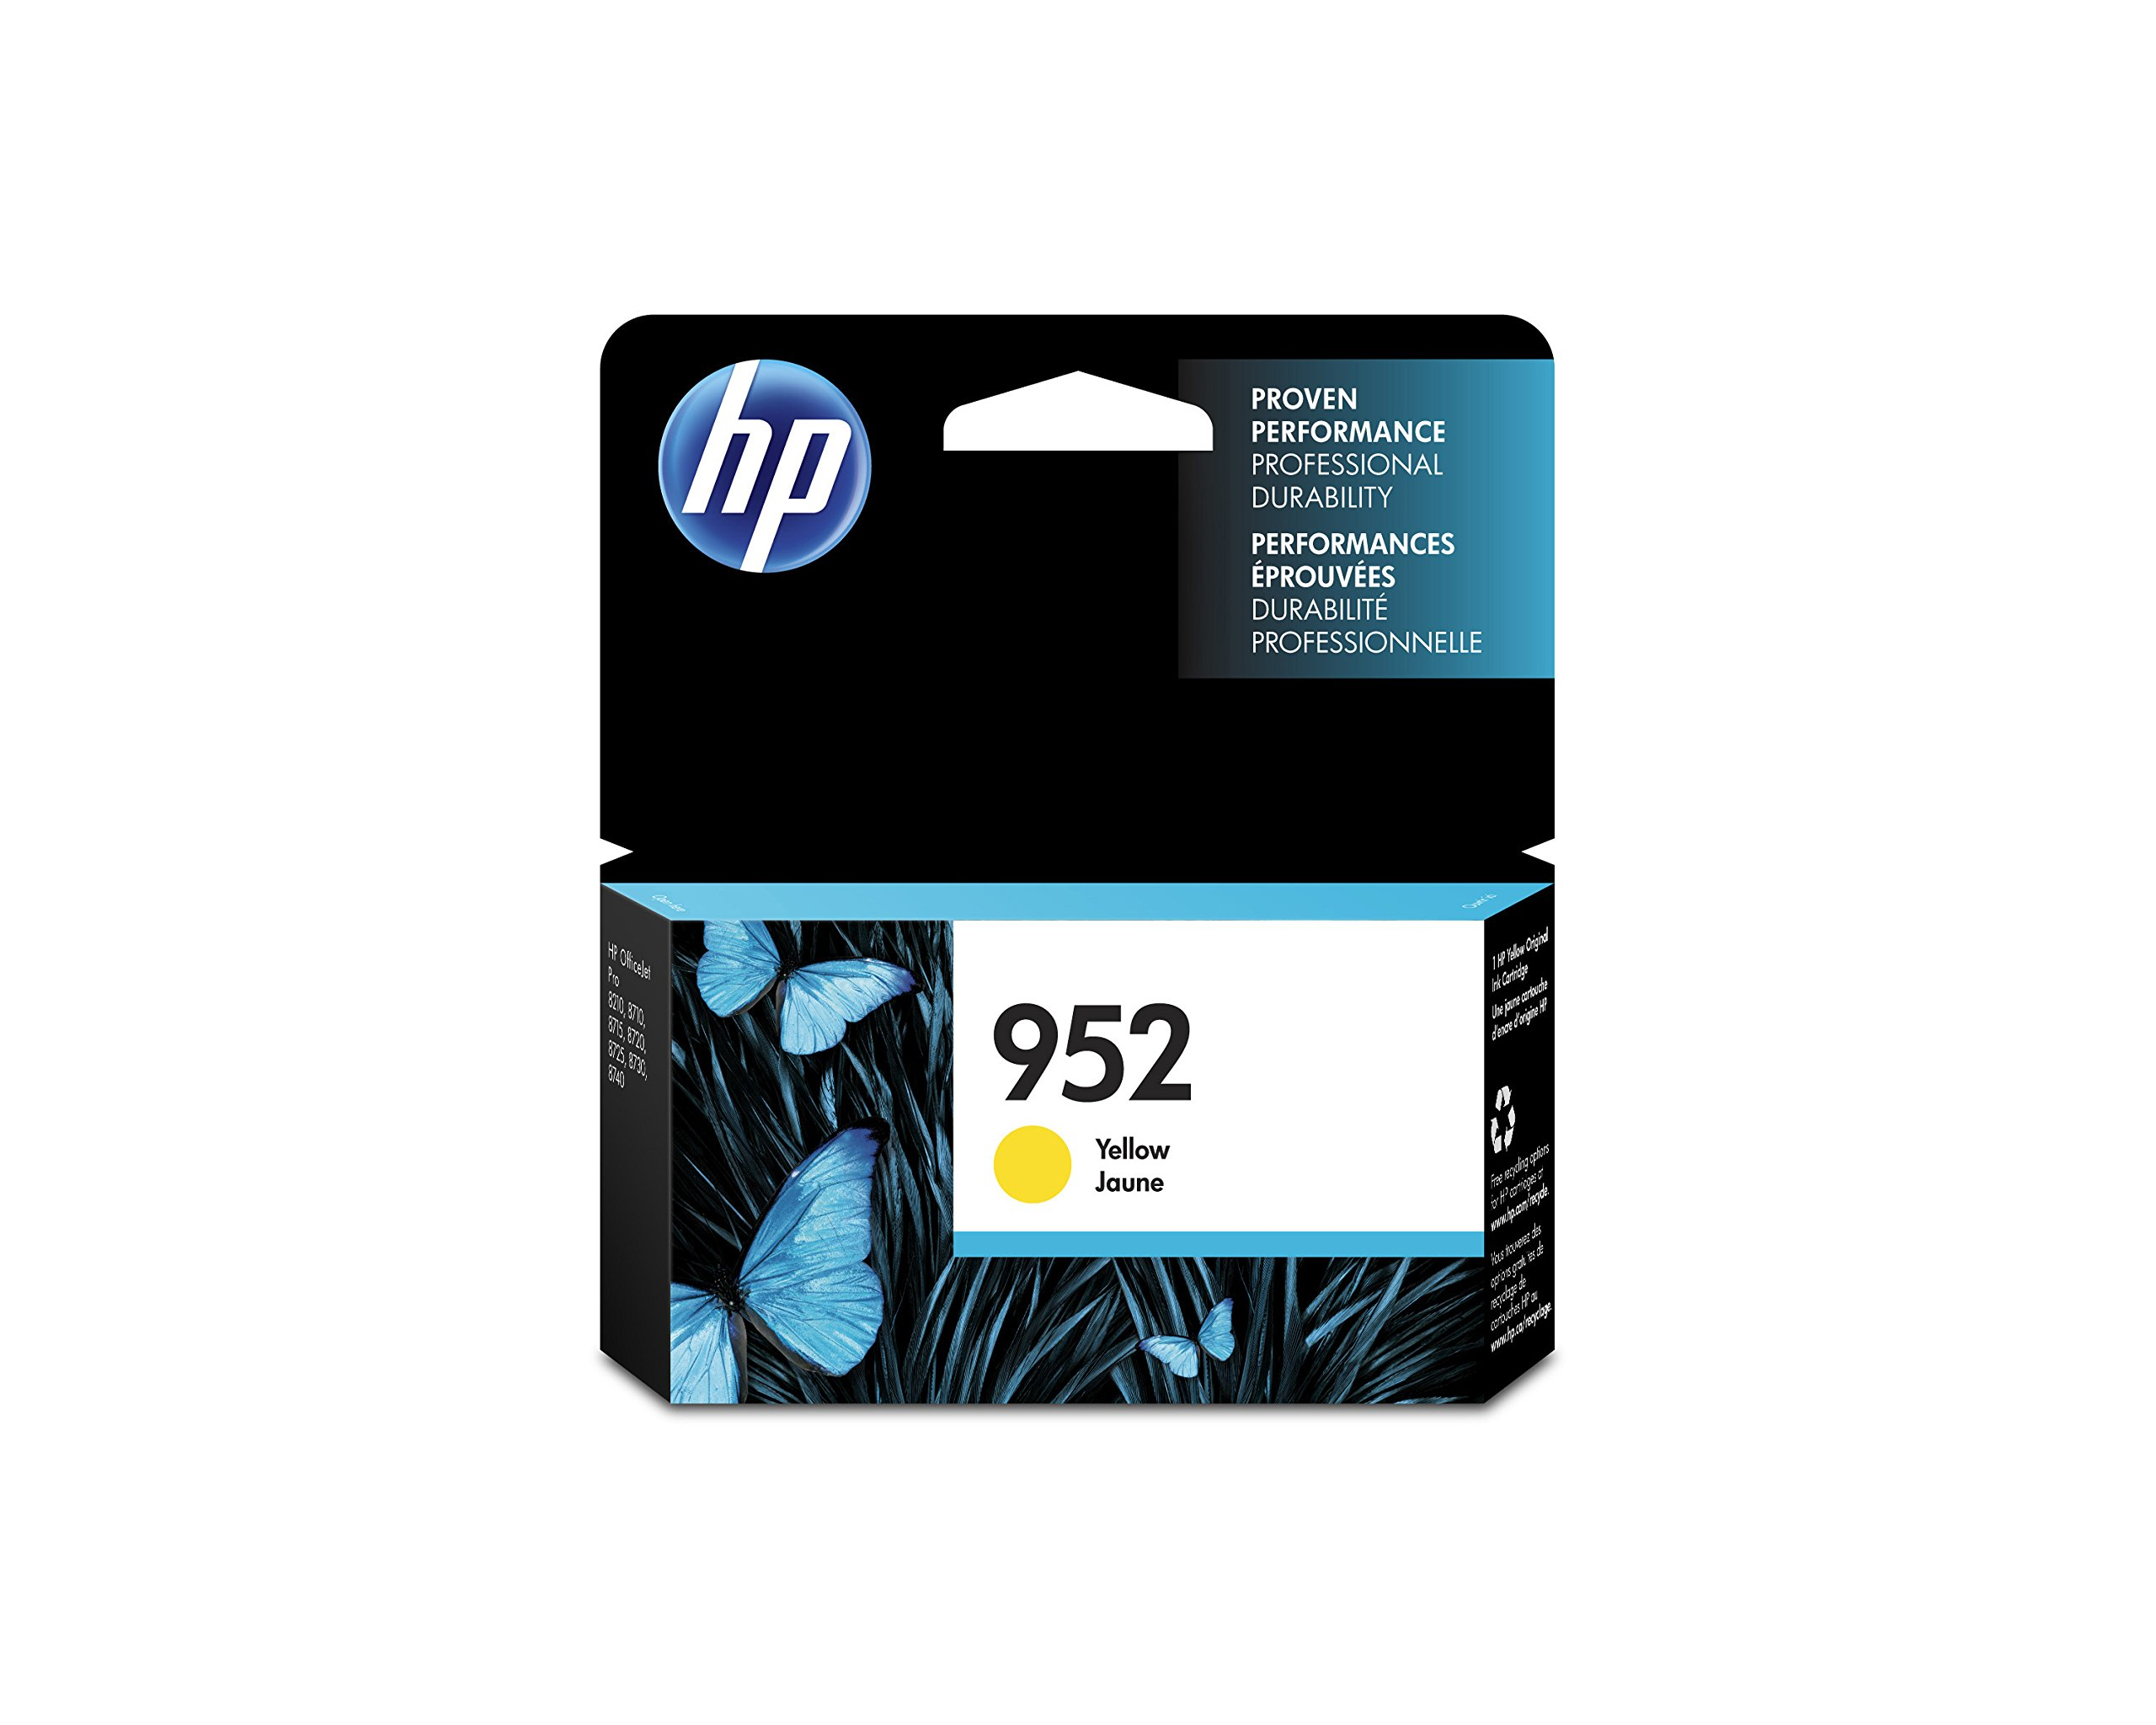 HP 952 Yellow Original Ink Cartridge (L0S55AN) for HP OfficeJet Pro 7740 8702 8710 8715 8720 8725 8730 8740